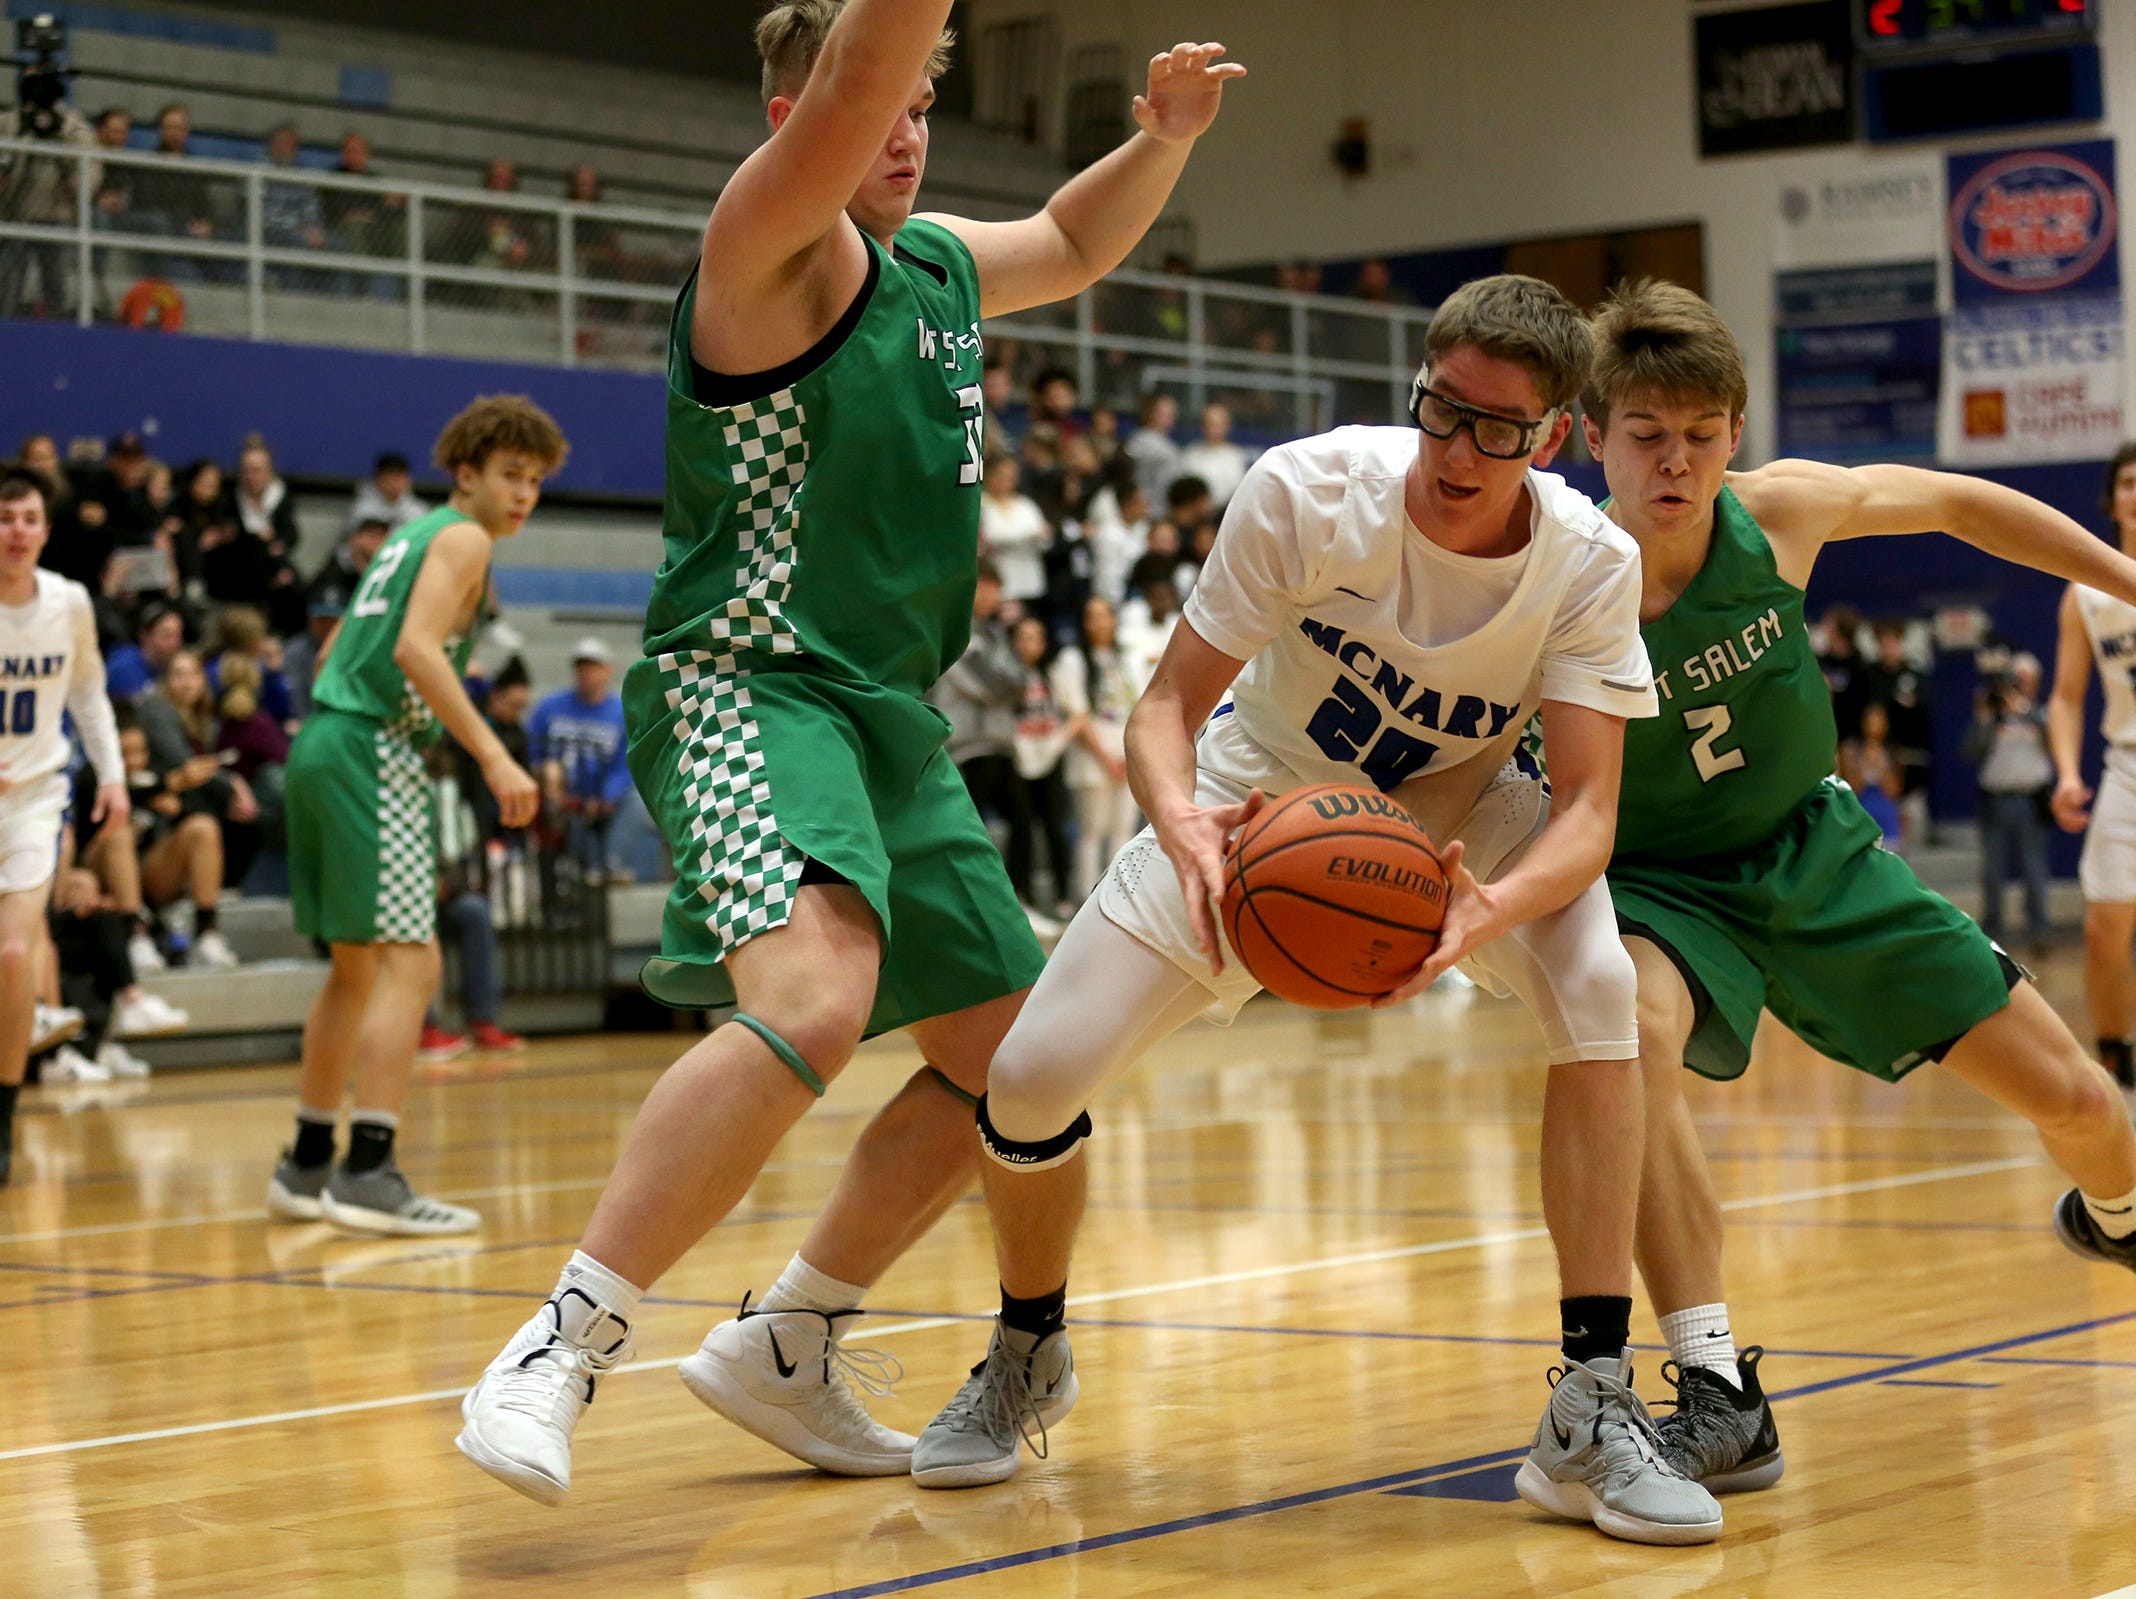 McNary's Noah Hudkins (20) protects the ball during the McNary boys basketball vs. West Salem game at McNary High School in Keizer on Wednesday, Feb. 6, 2019.